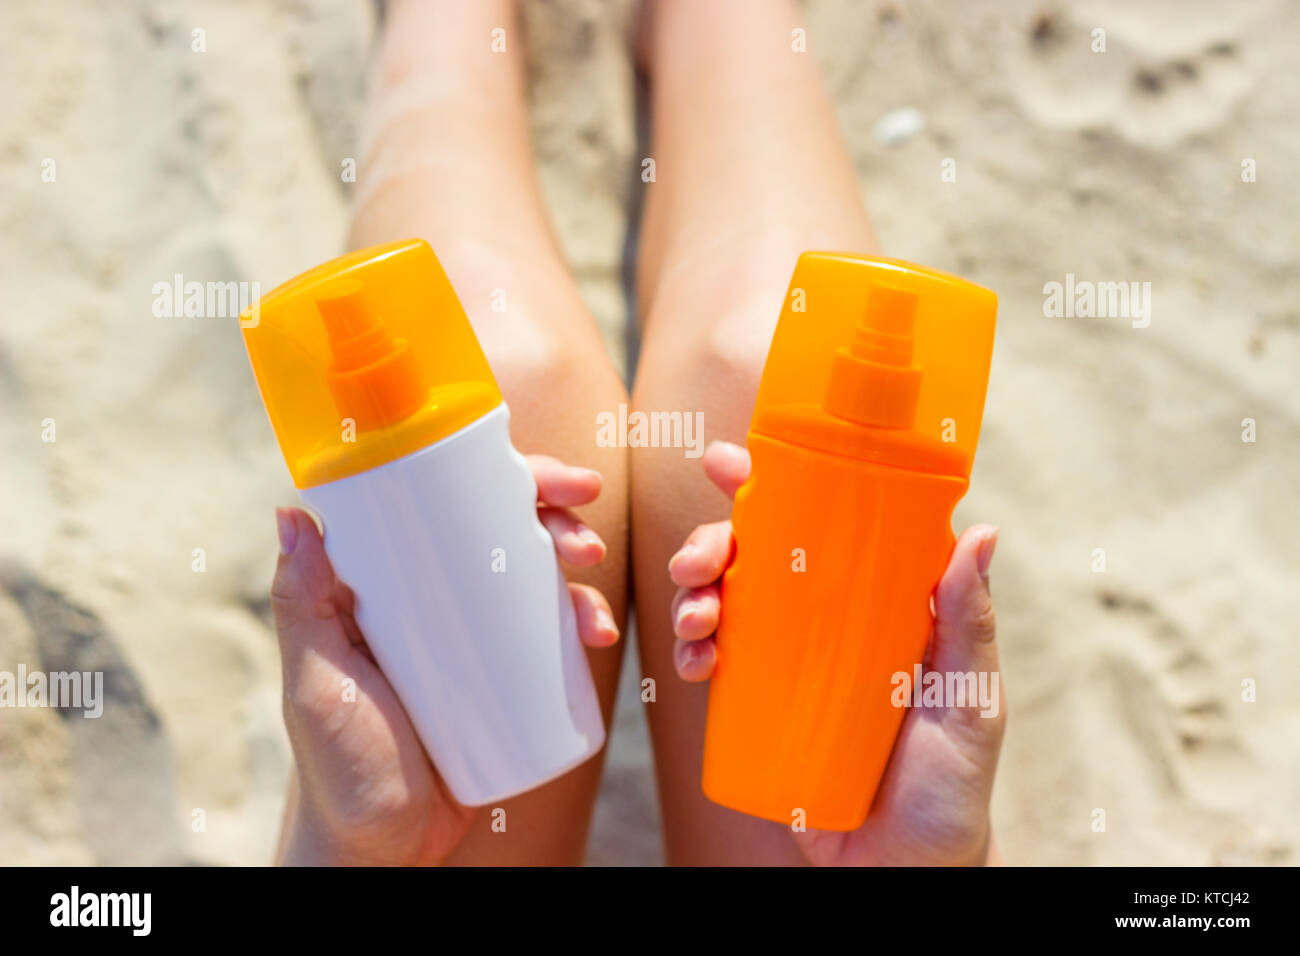 A woman holding two bottles of sunscreen in her hands. A girl chooses between two bottles of sunscreen - Stock Image